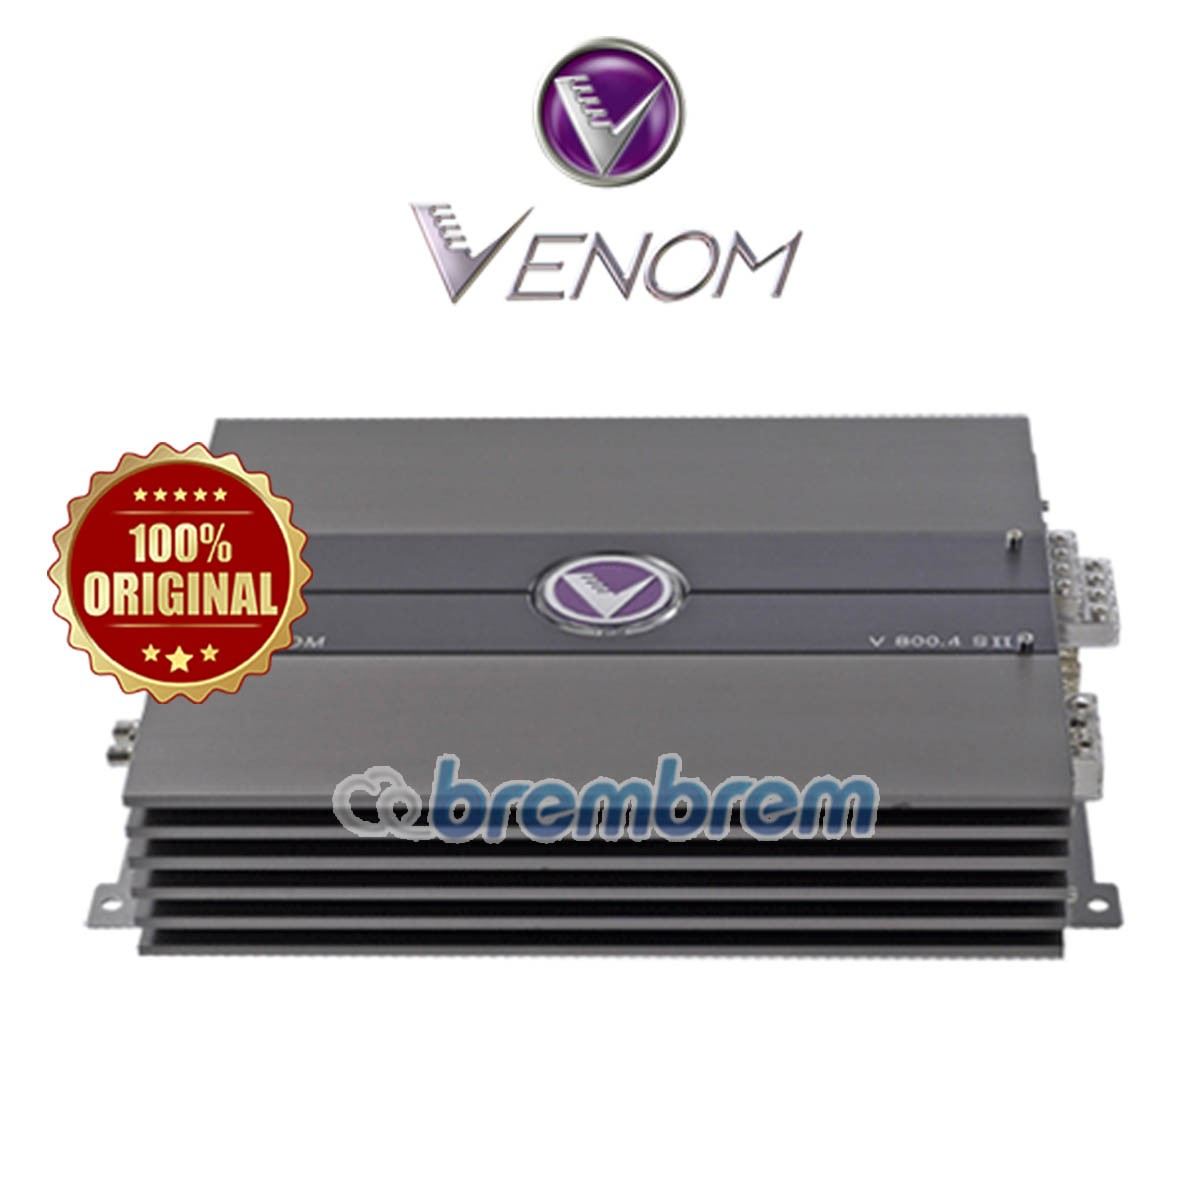 VENOM SILVER SERIES V800.4SII - POWER 4 CHANNEL